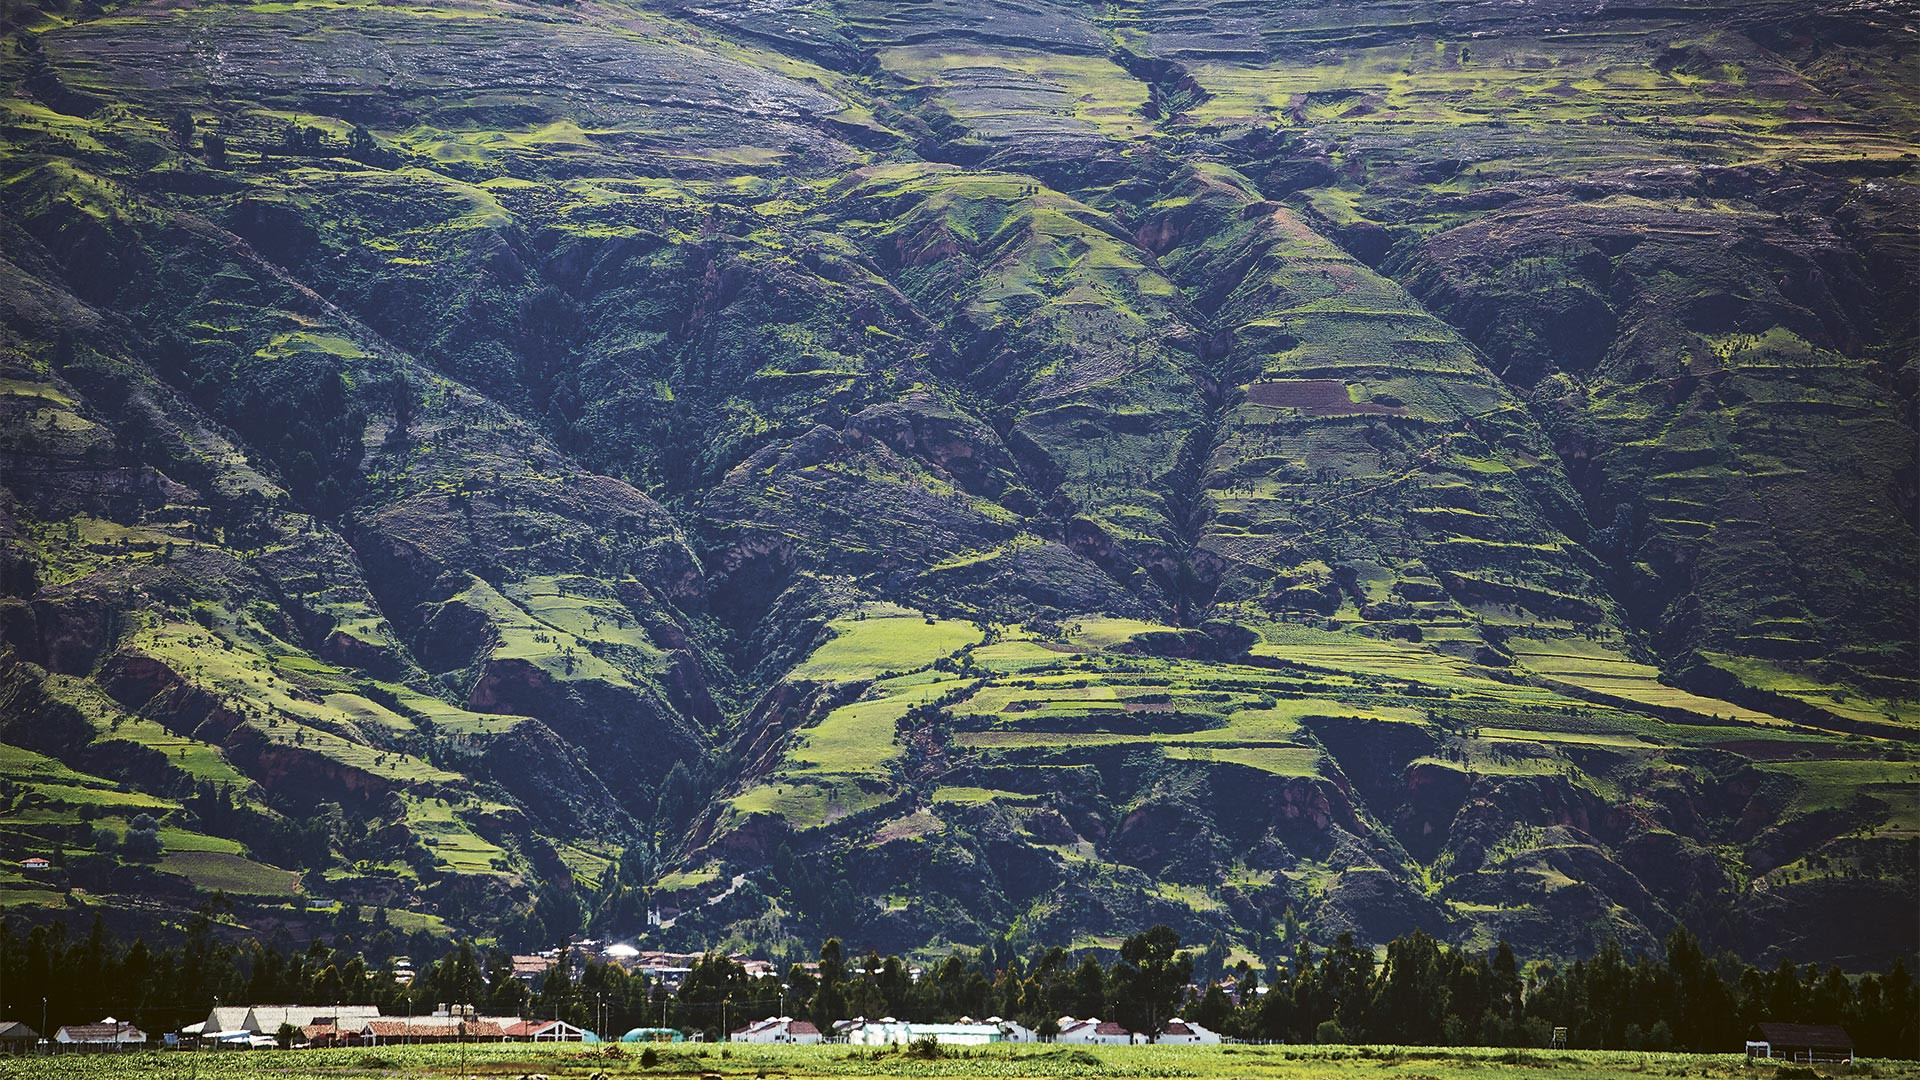 The mountainous Andean region